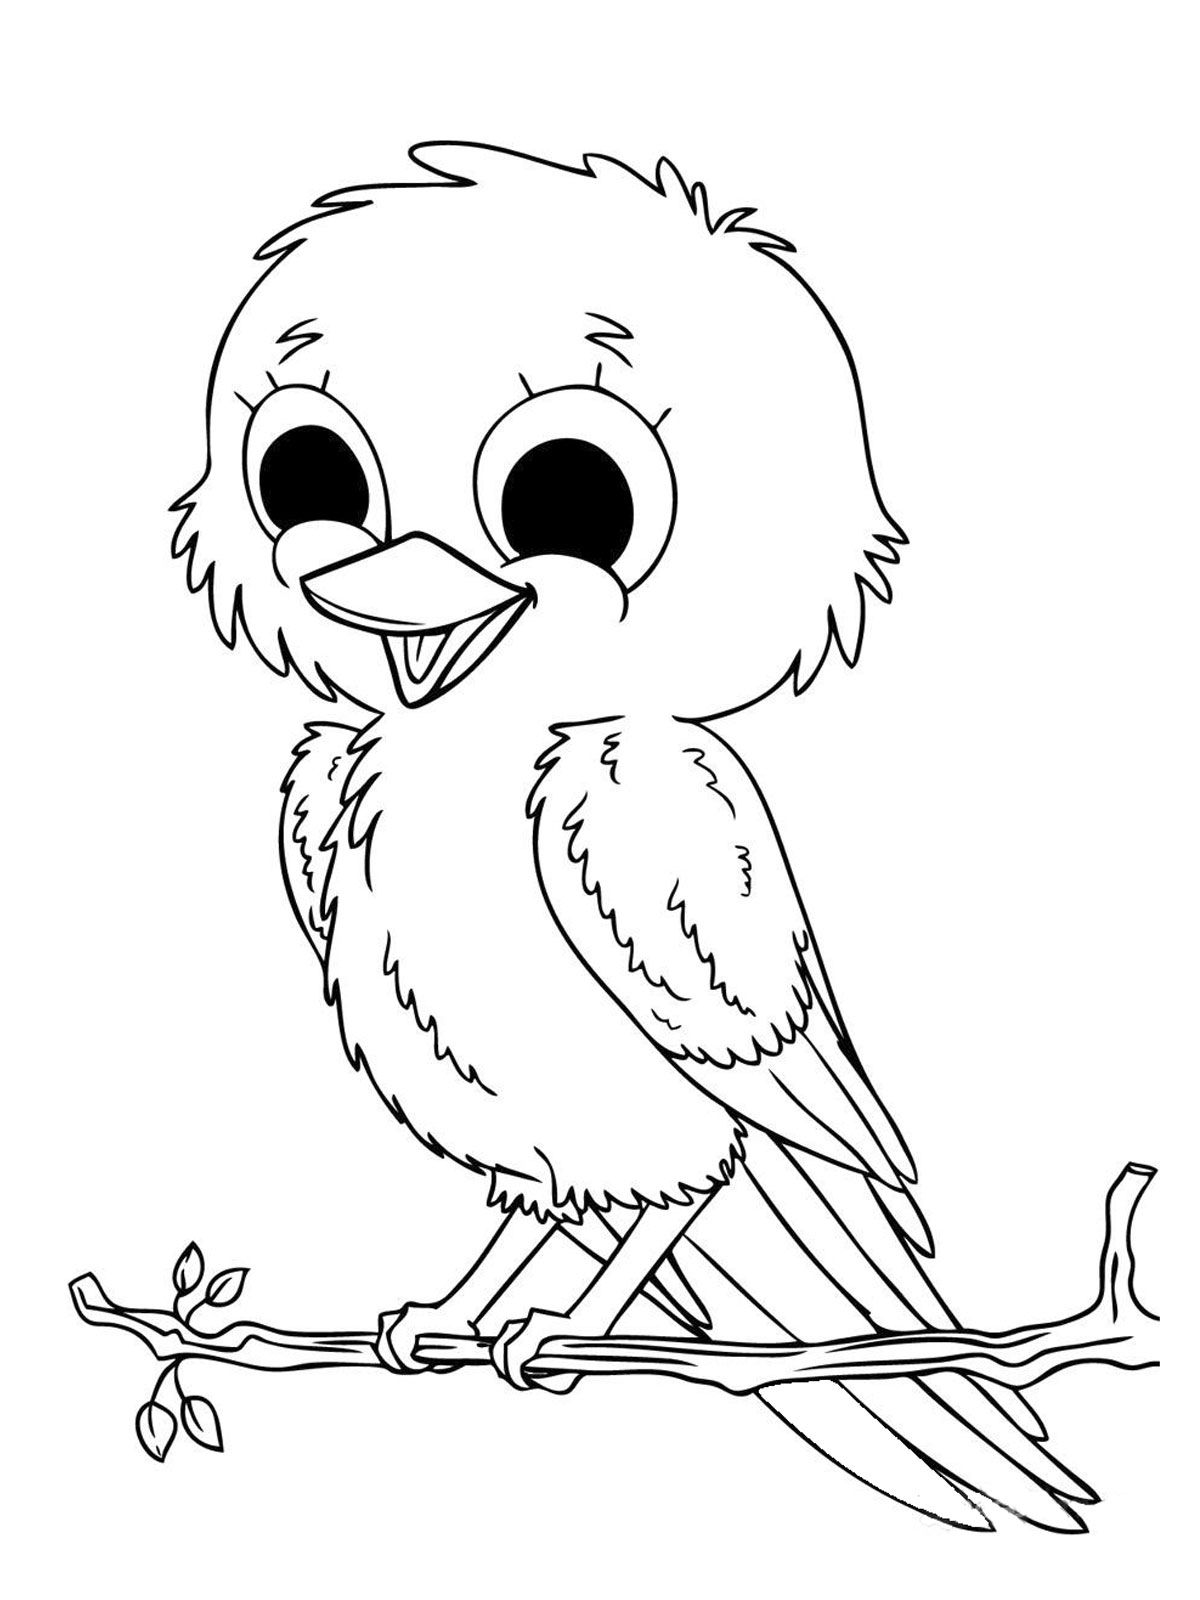 coloring+pages Download all baby animals coloring pages